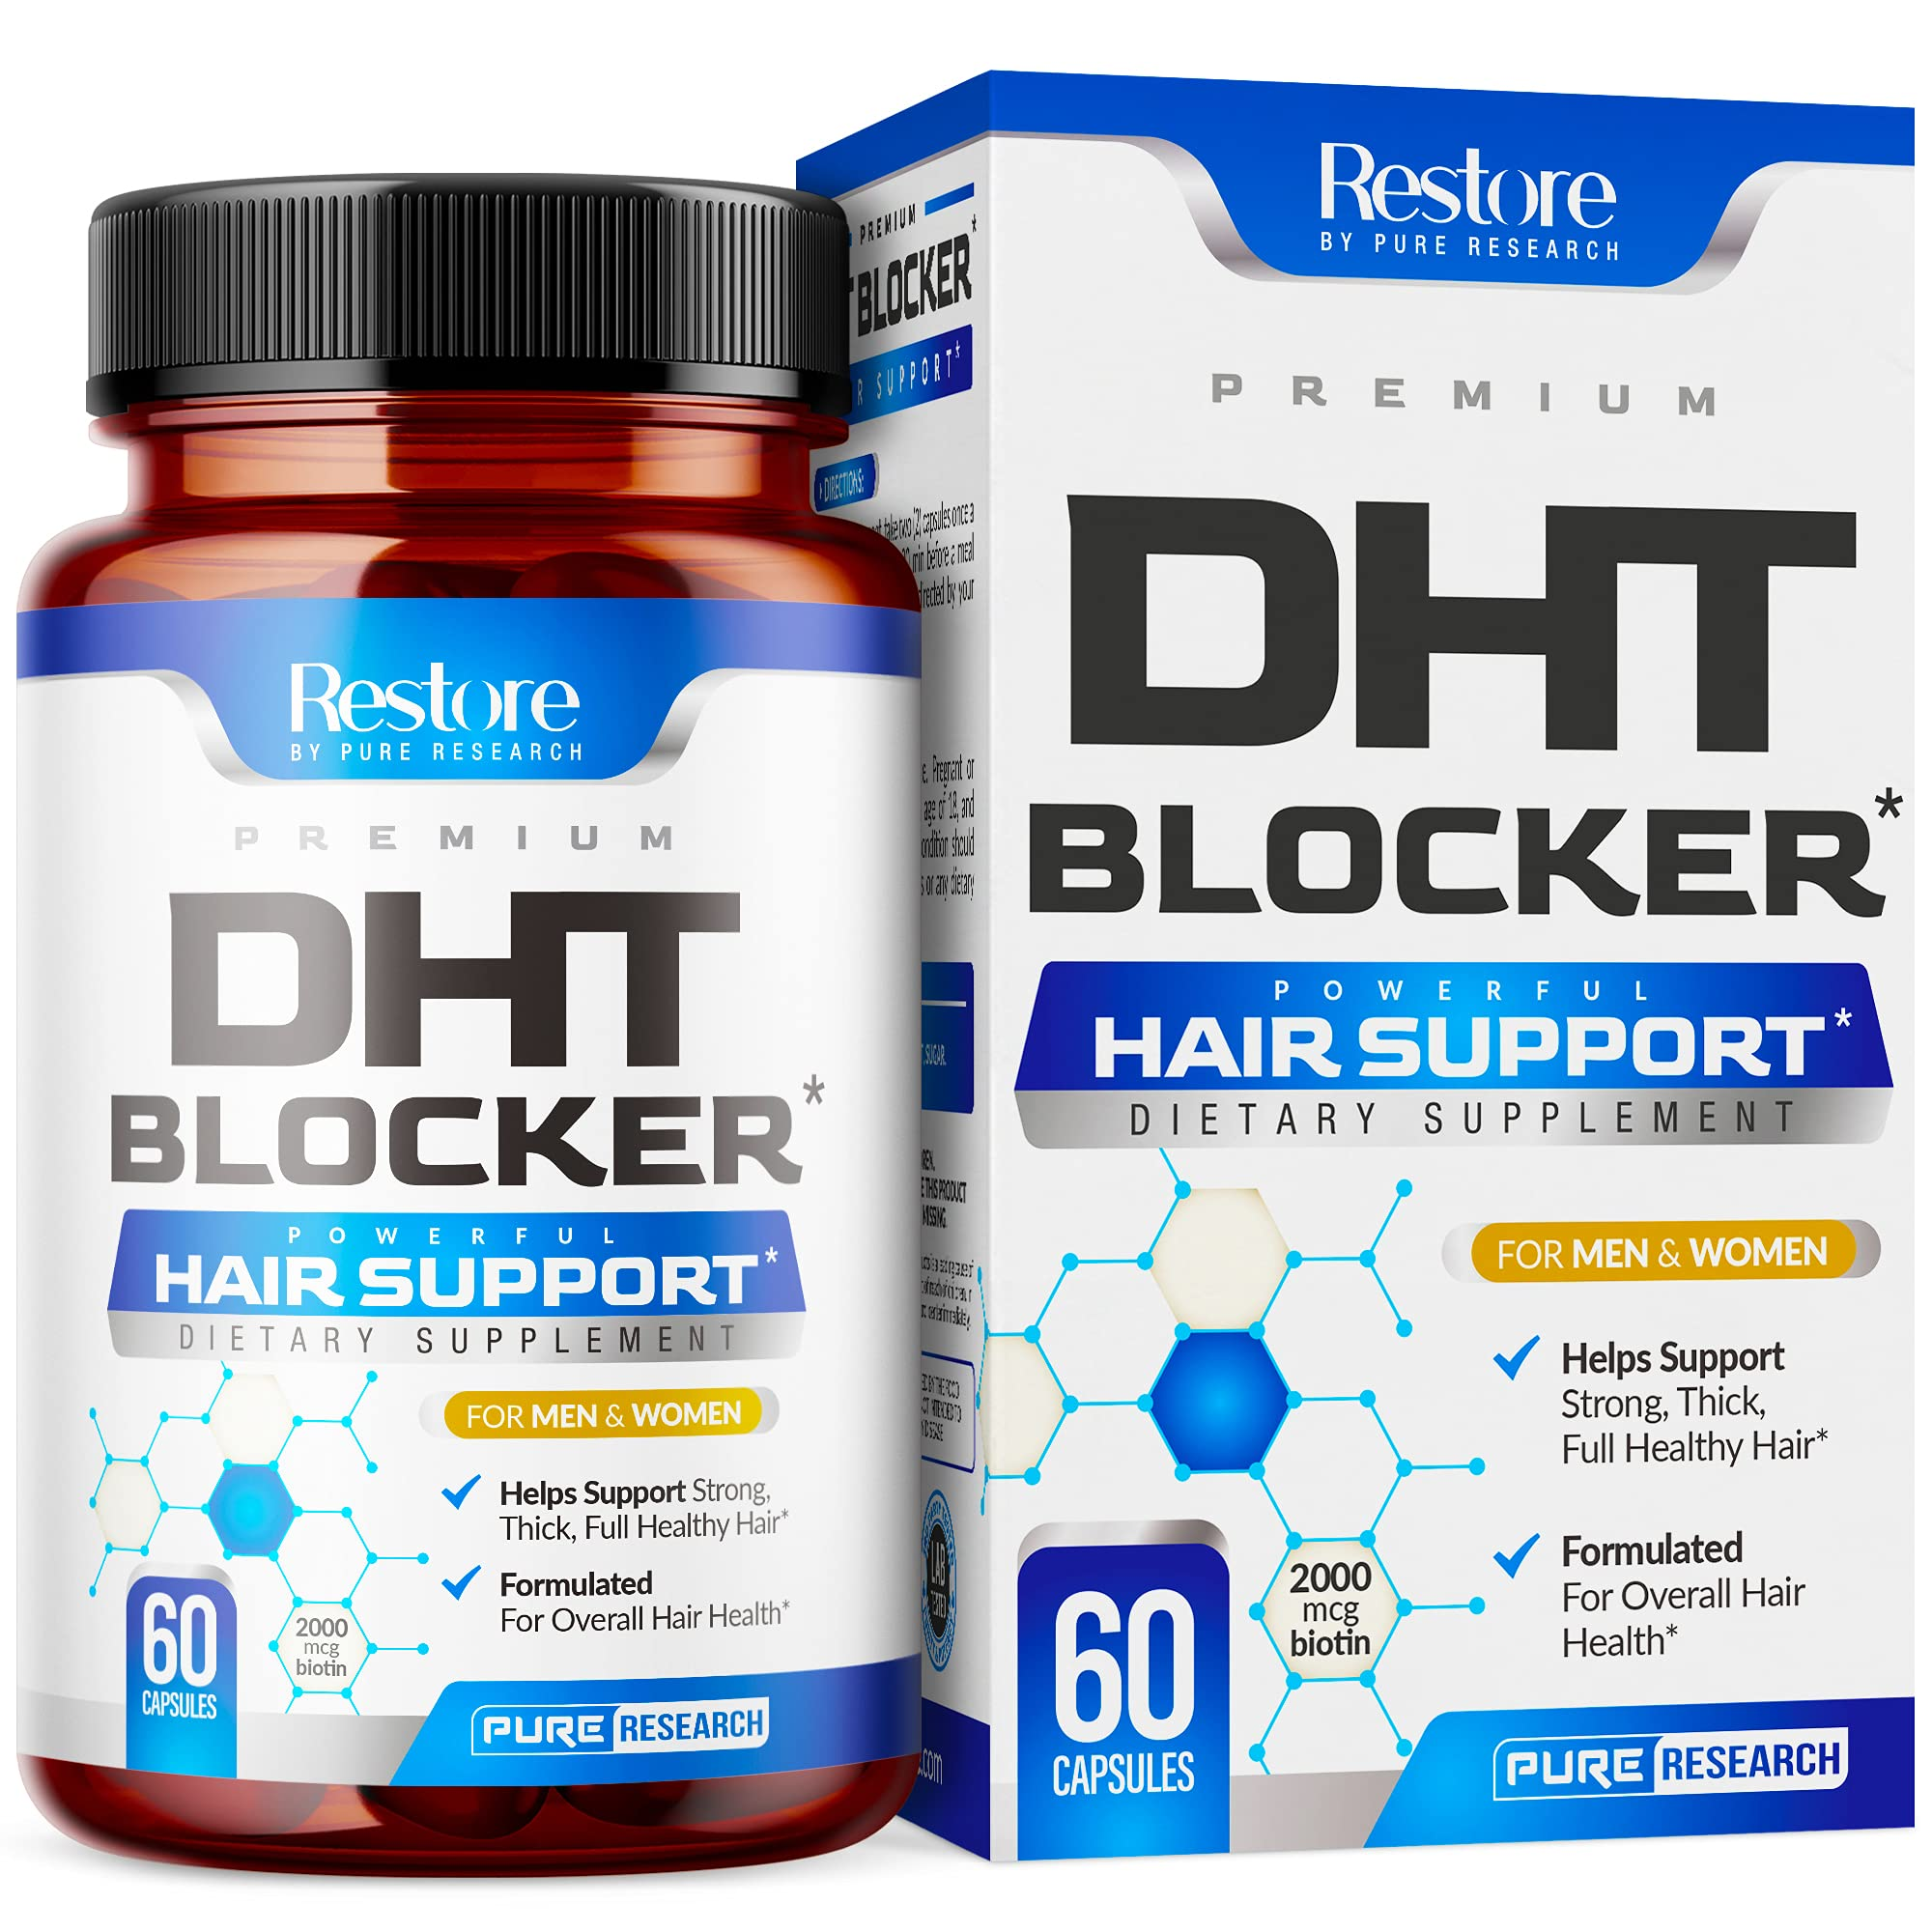 DHT Blocker Hair Support Supplement - Supports Healthy Hair Support - Helps Support Healthy Thicker Stronger Hair - With High Potency Biotin and Saw Palmetto - For Men And Women - One Month Supply